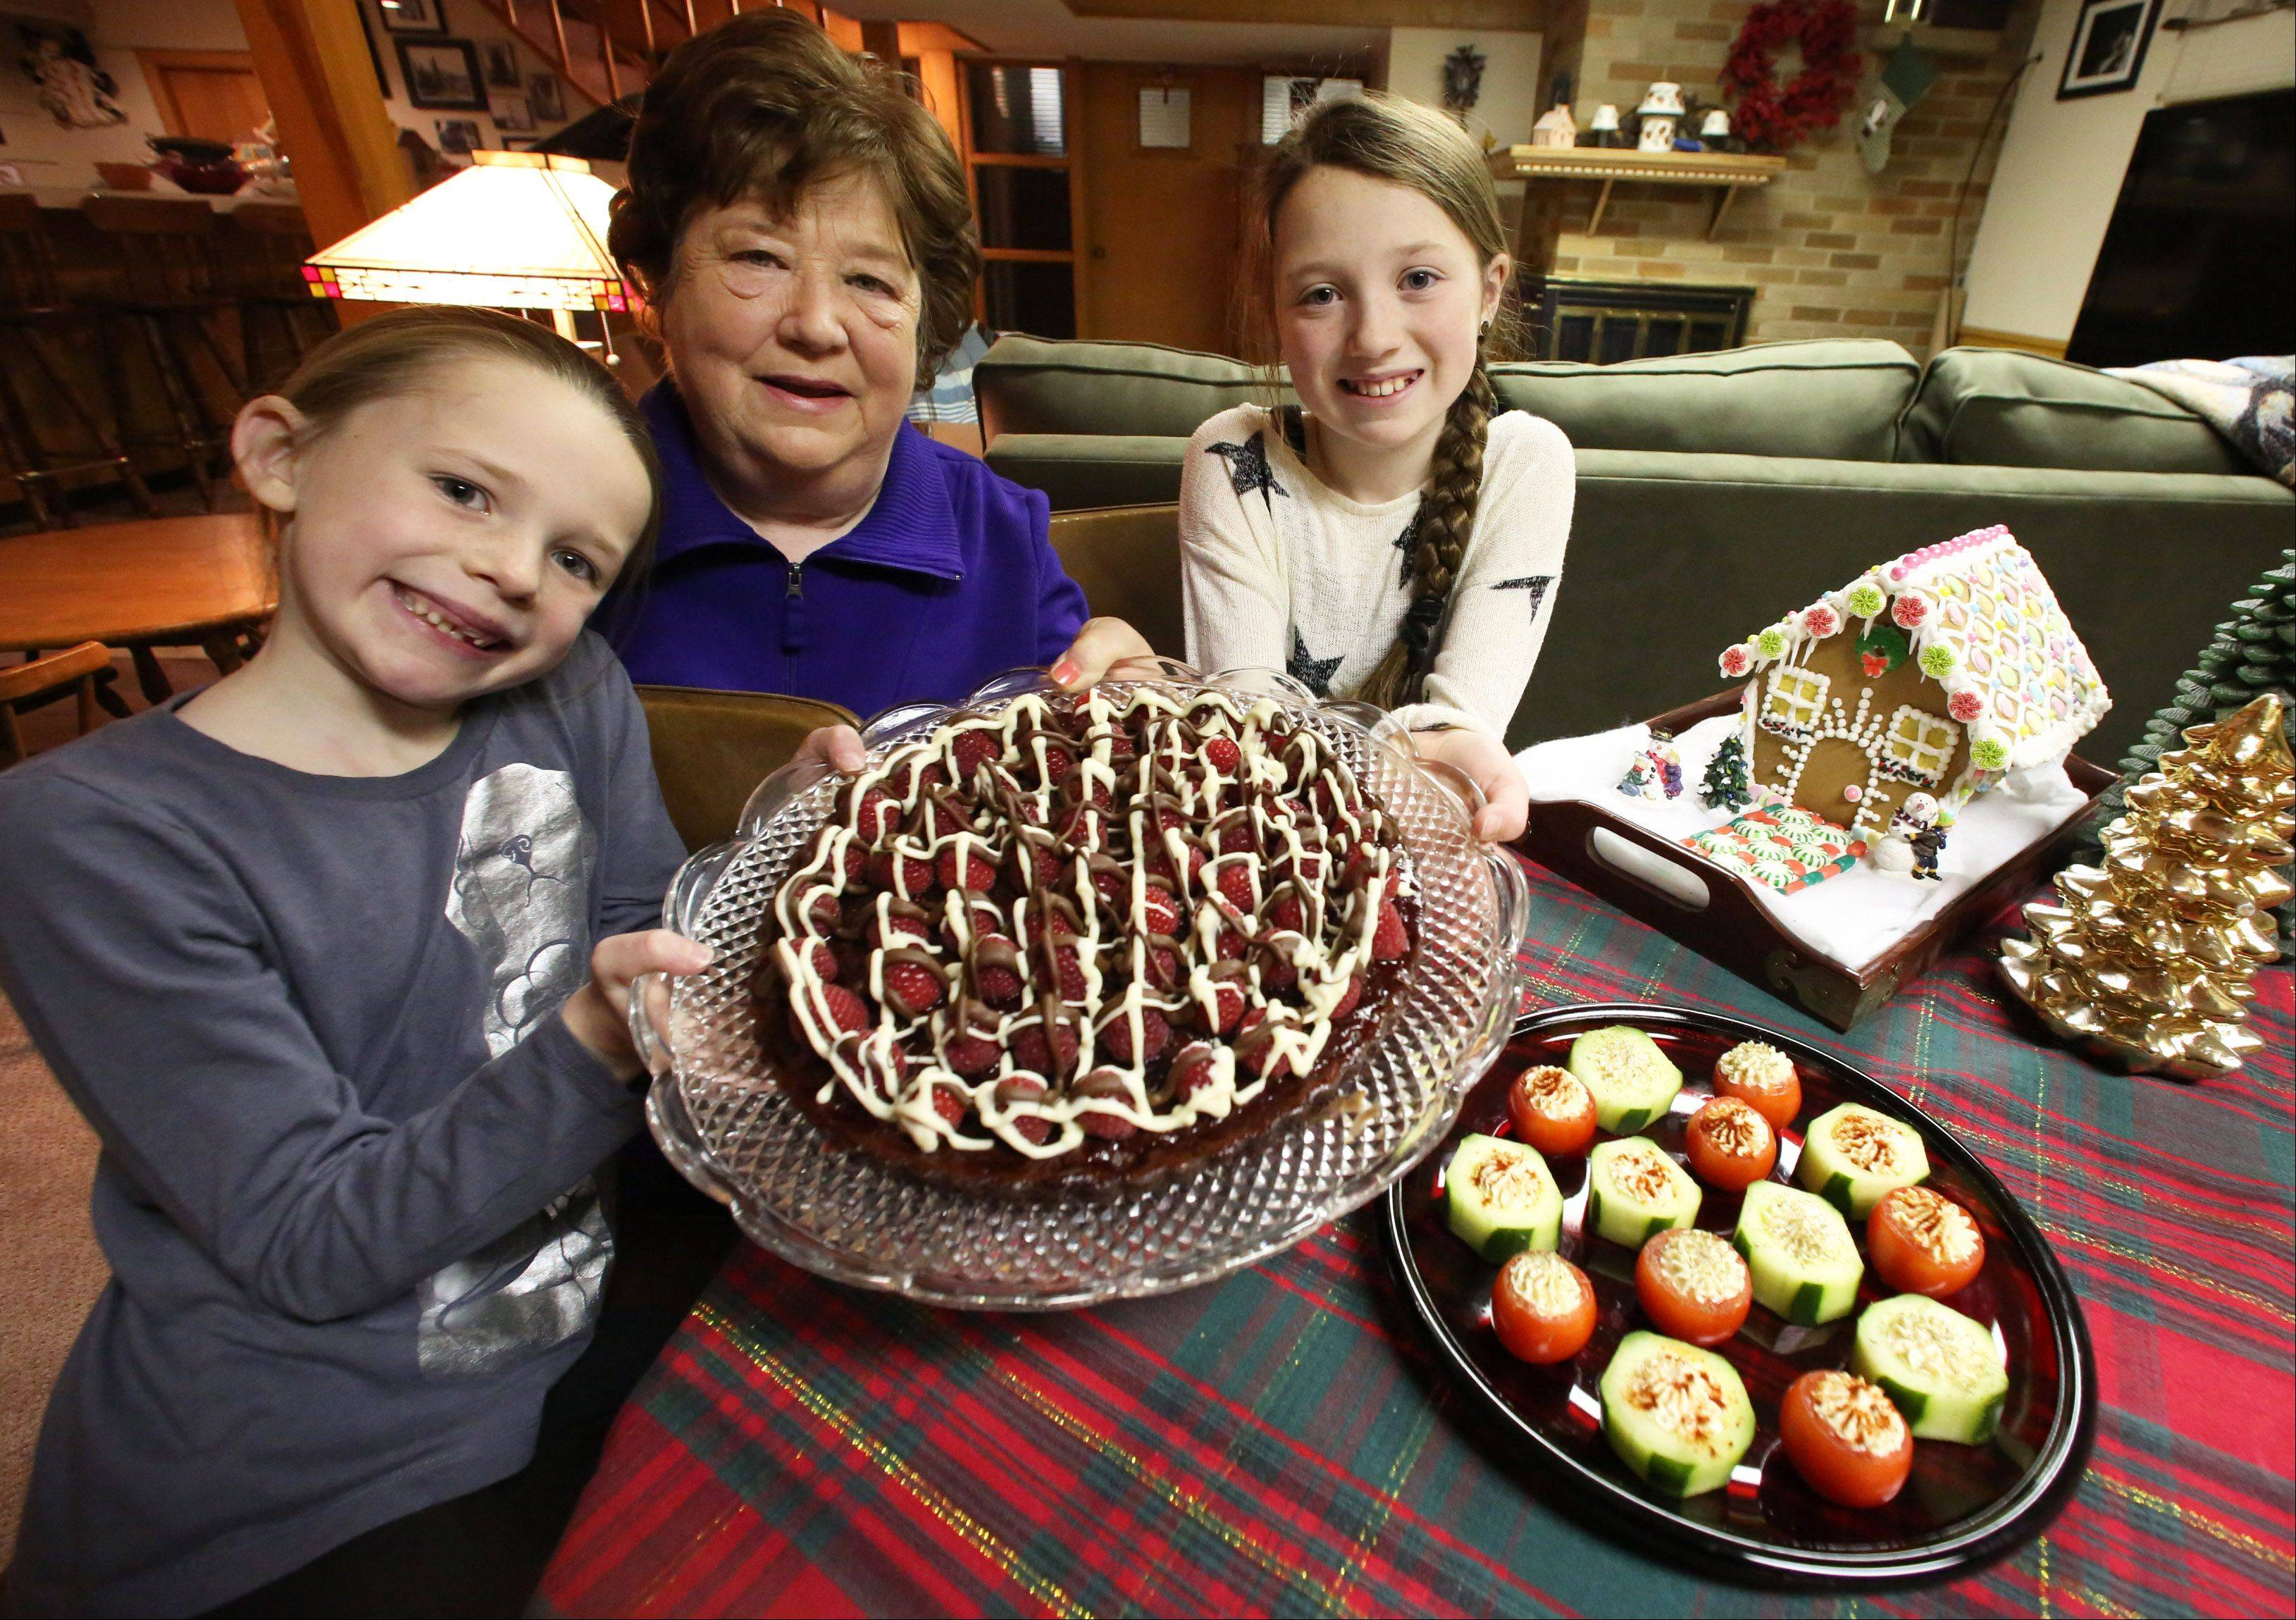 Anola Stowick and her granddaughters Allie Edwards, 7, and Madison Edwards, 10, holding chocolate raspberry torte and on the side stuffed cucumbers and campari tomatoes.